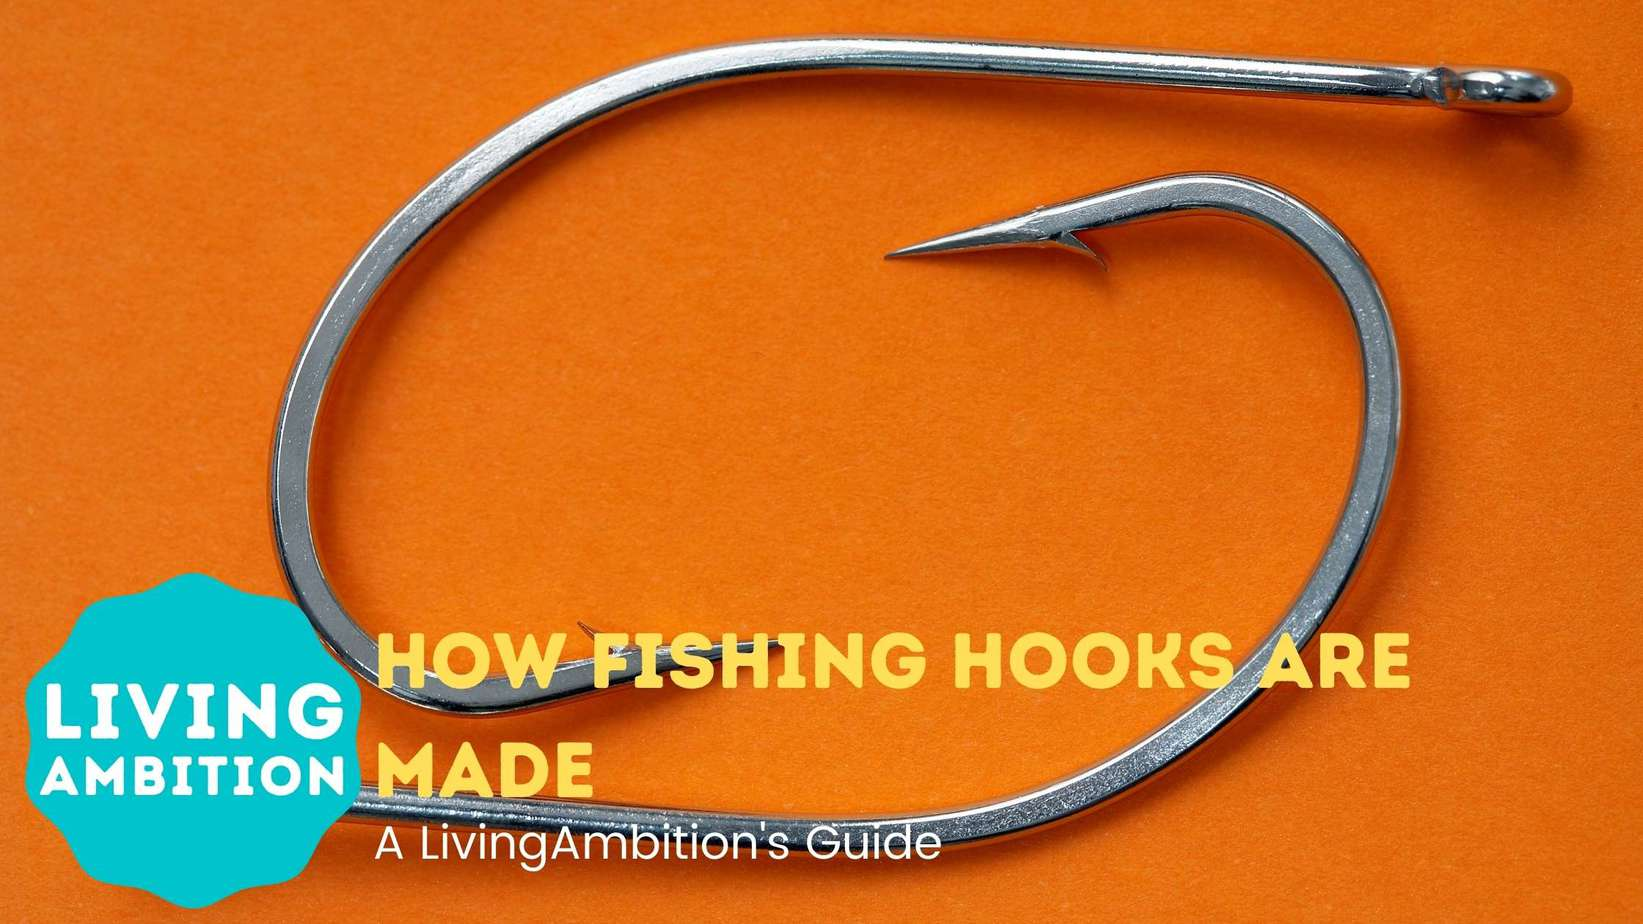 how fishing hooks are made